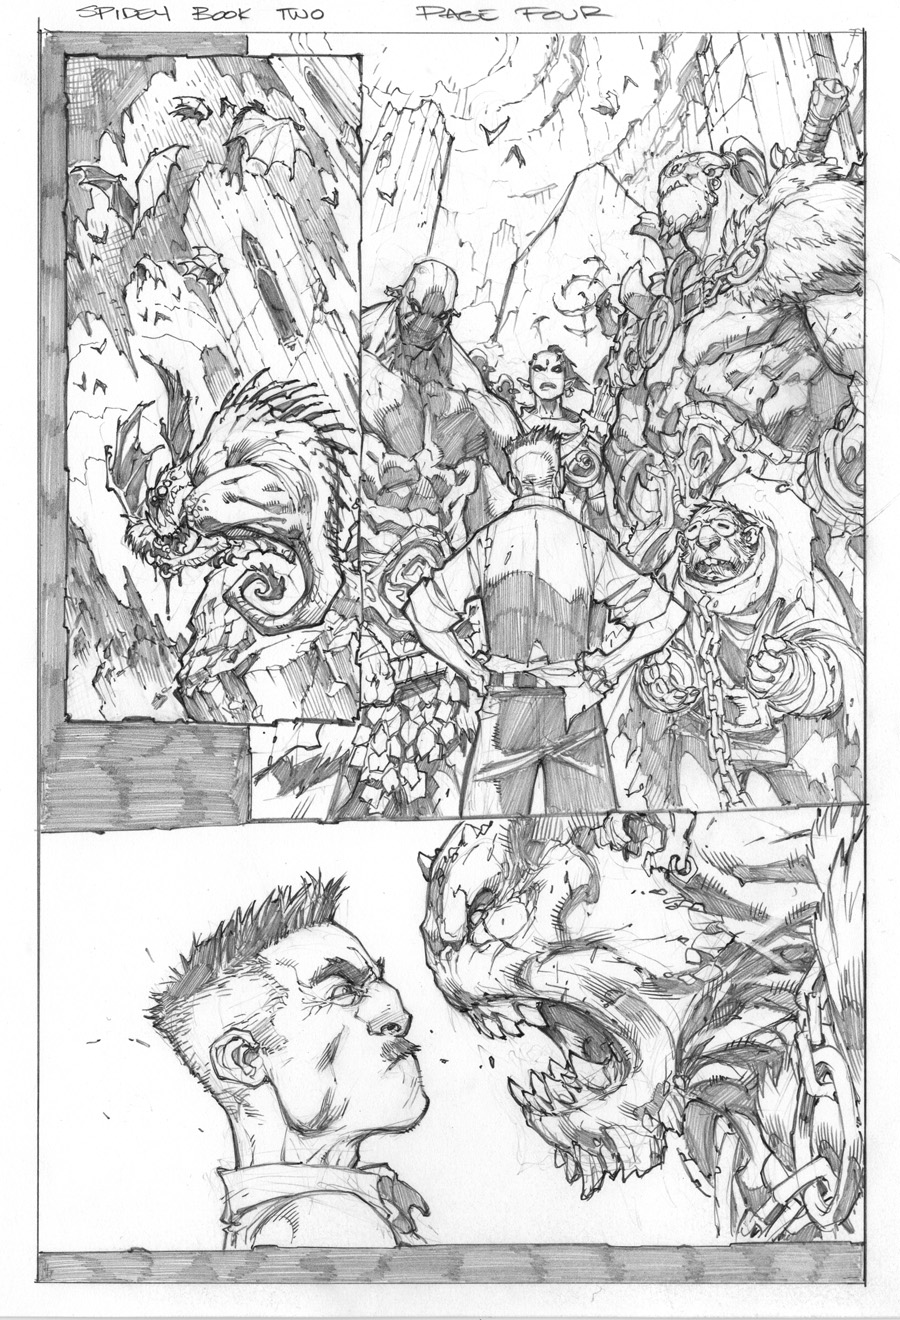 Avenging Spider-Man #1-3 [Nouvelle Série] - Page 2 Avenging_Spider-Man_2_Pg7